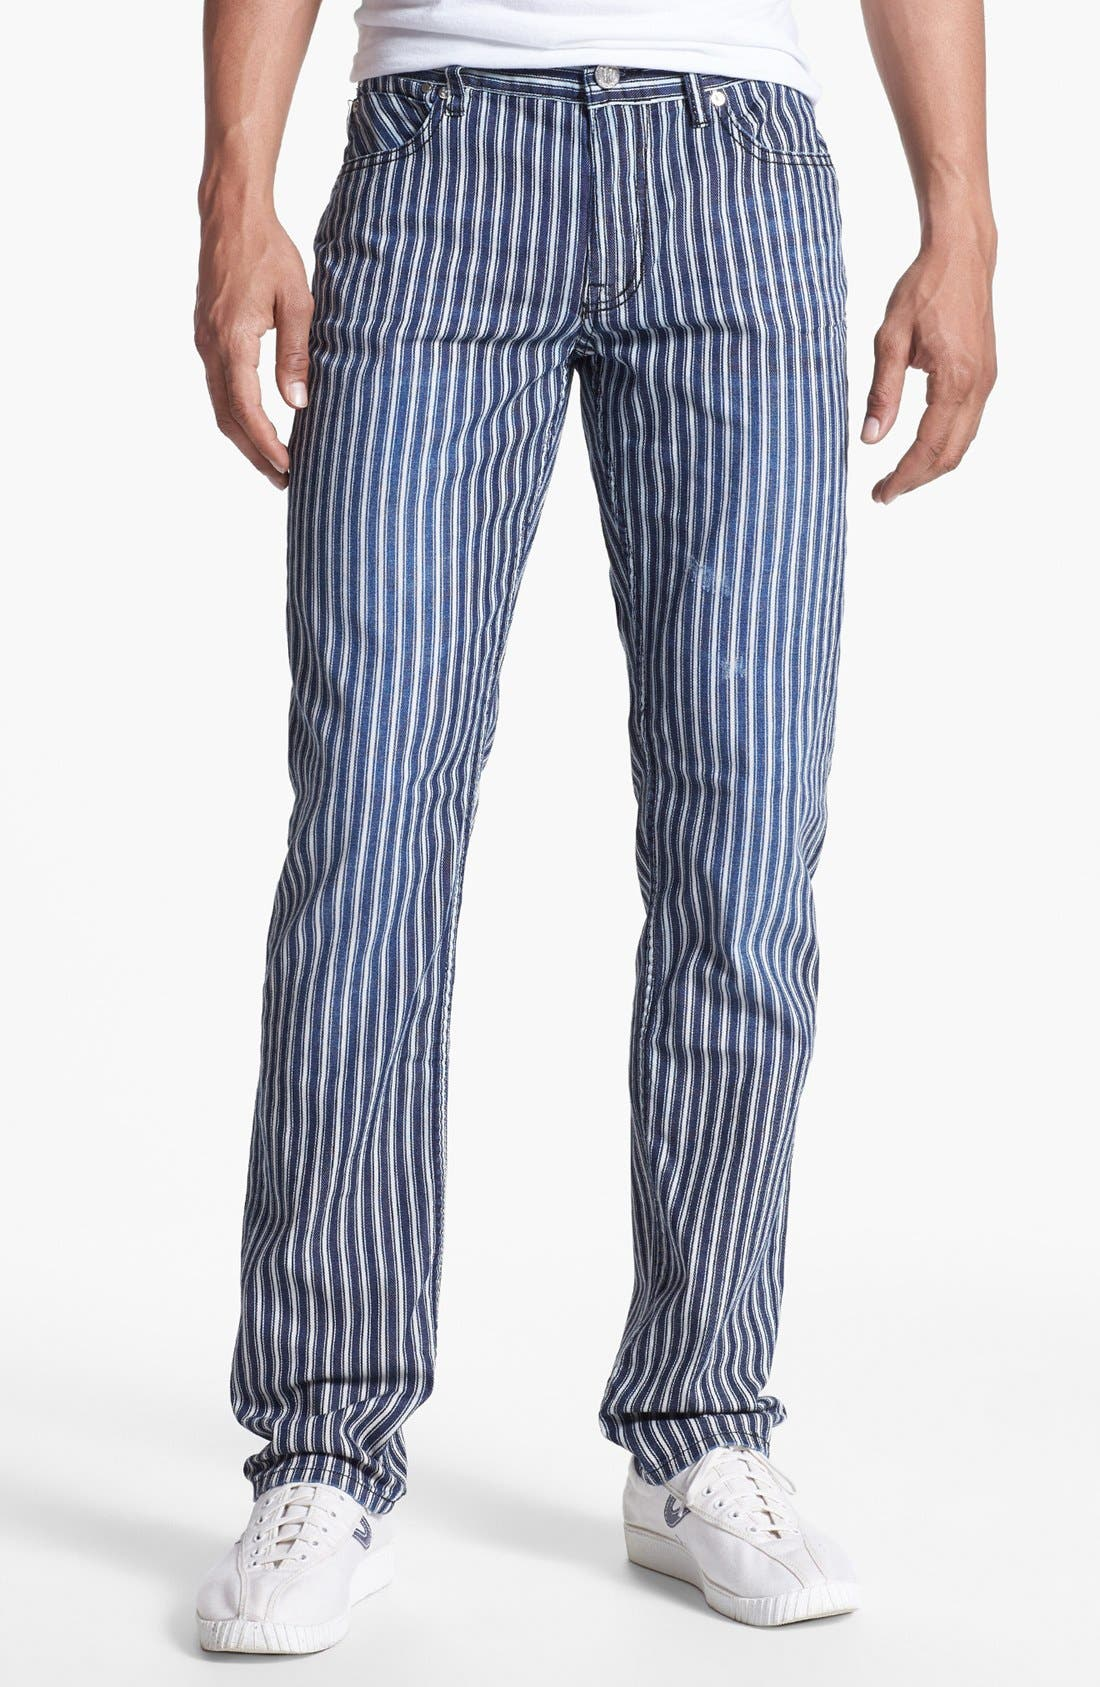 Alternate Image 1 Selected - Williamsburg Garment Company 'Grand Street' Slim Fit Jeans (Engineer Stripe)